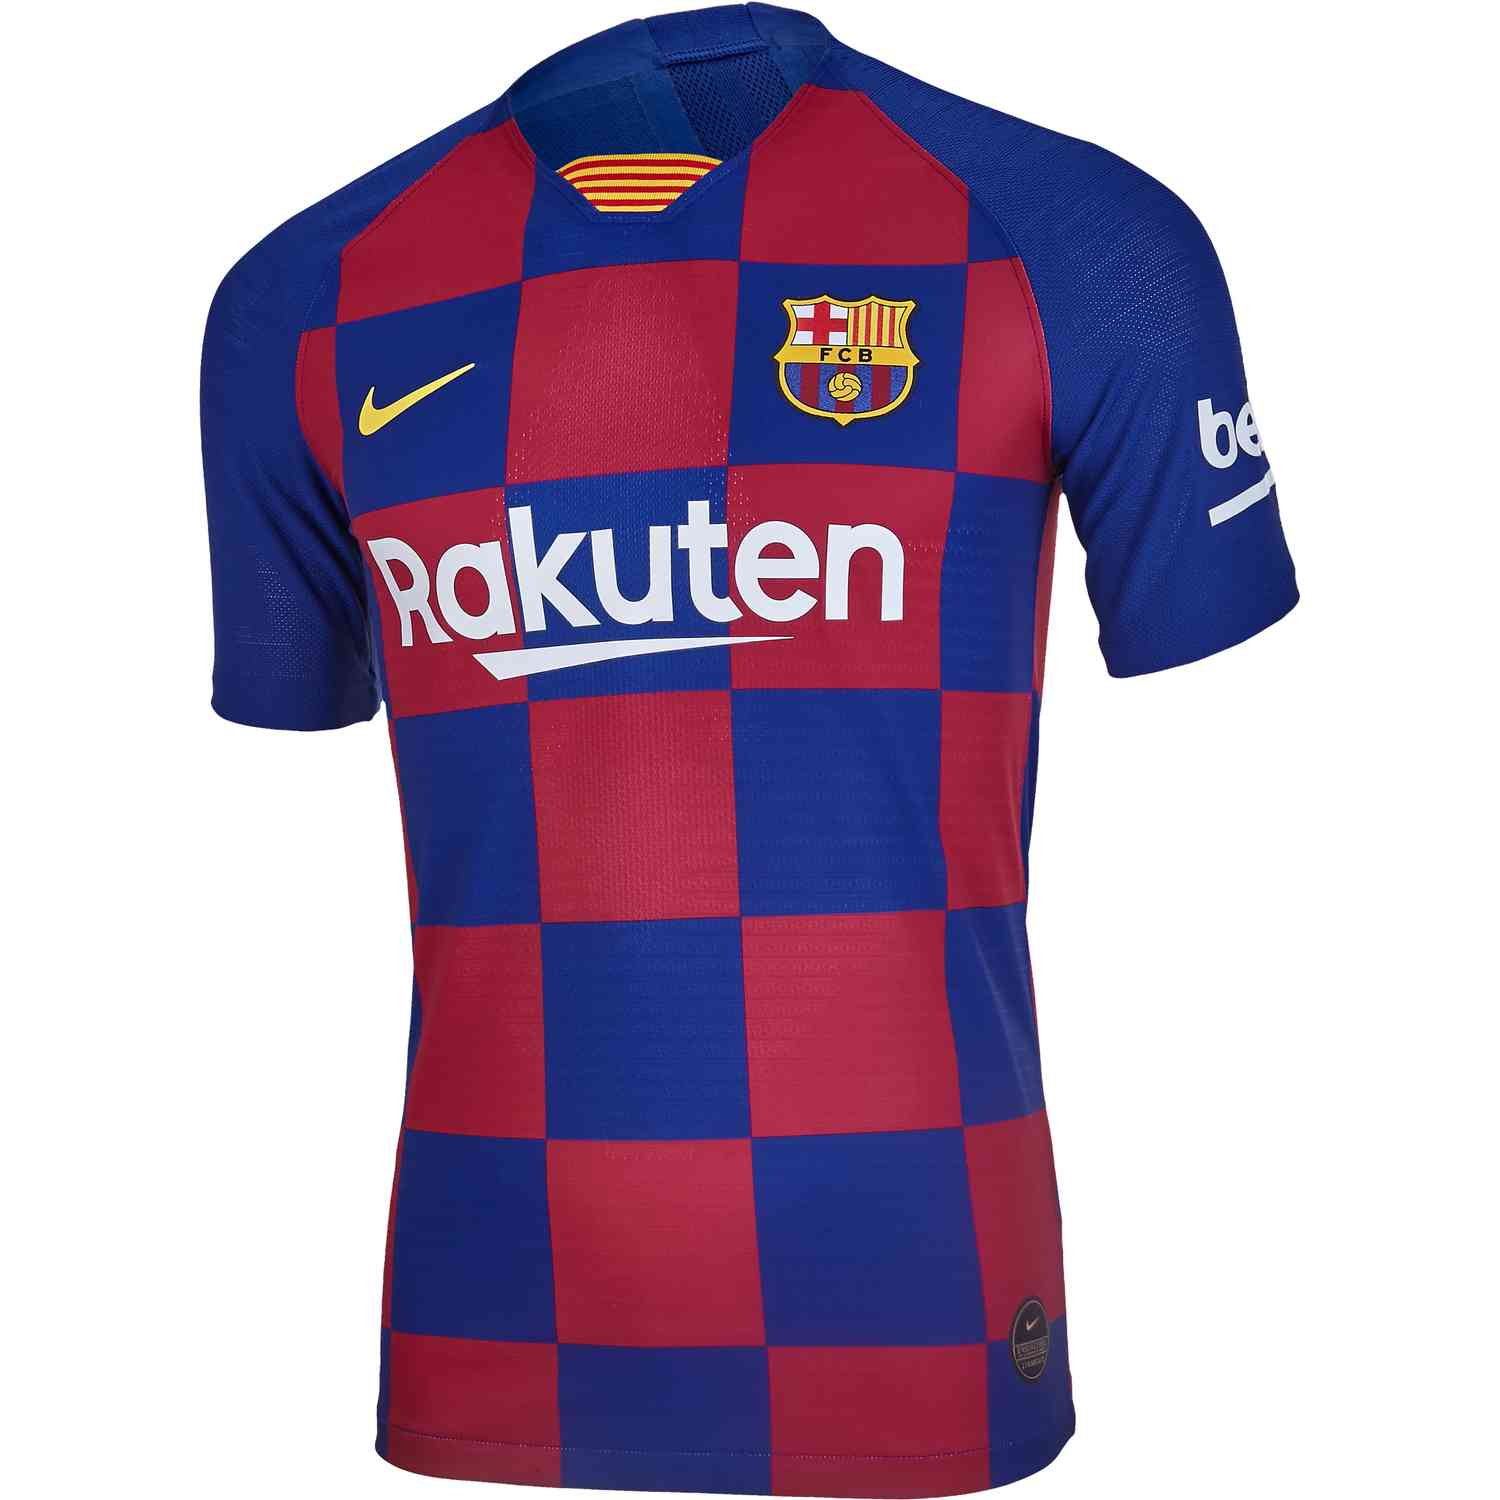 differently 9b7a6 4f42d 2019/20 Nike Barcelona Home Match Jersey